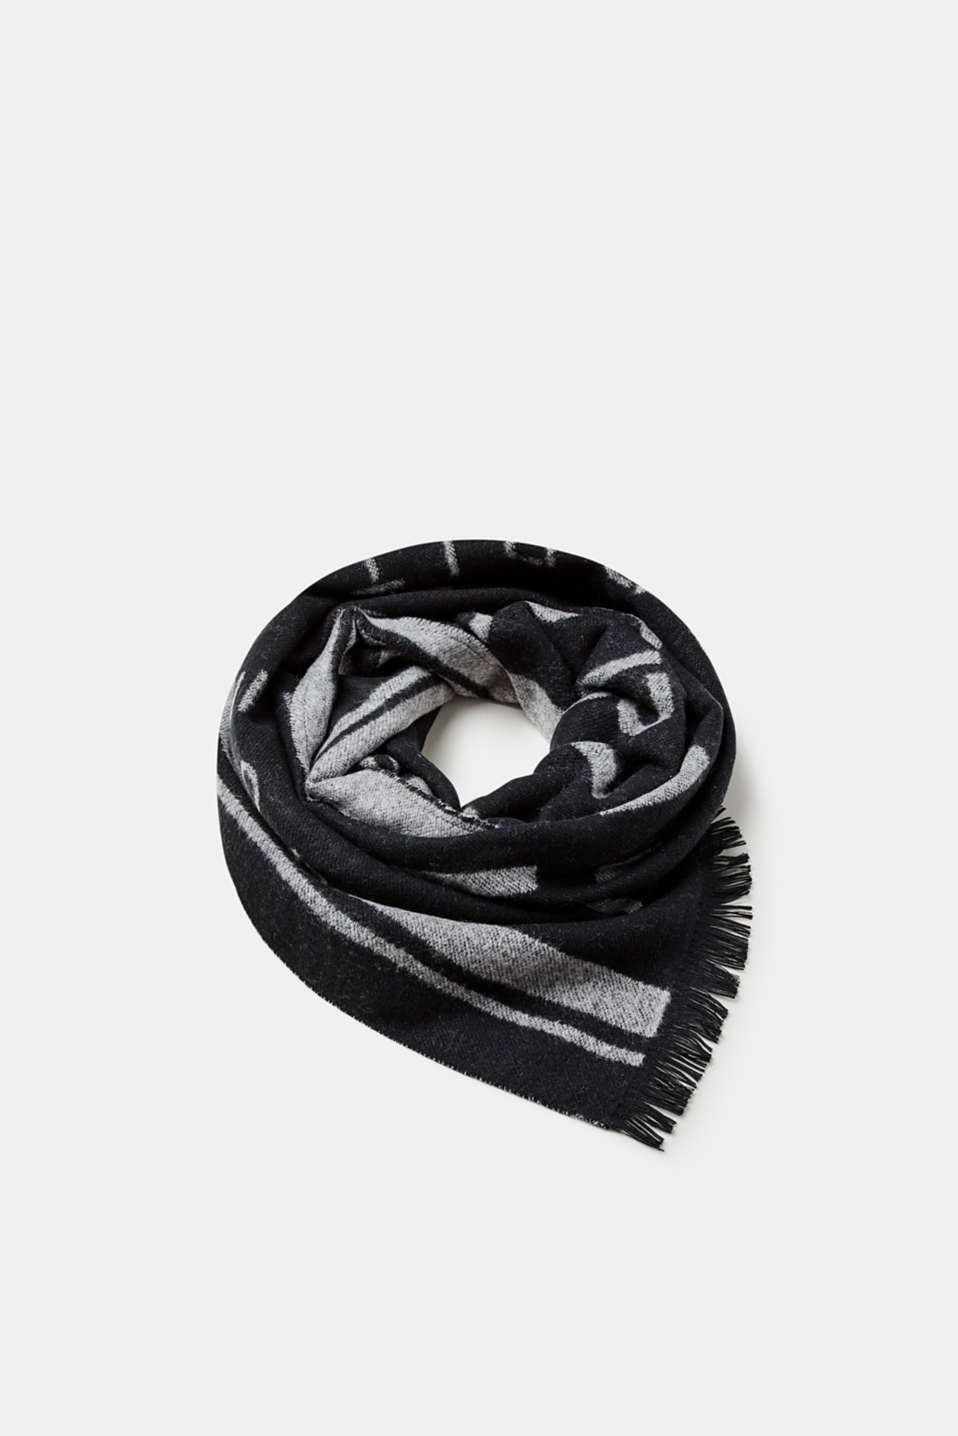 We love ESPRIT! The extensive logo intarsia makes this scarf a statement accessory.